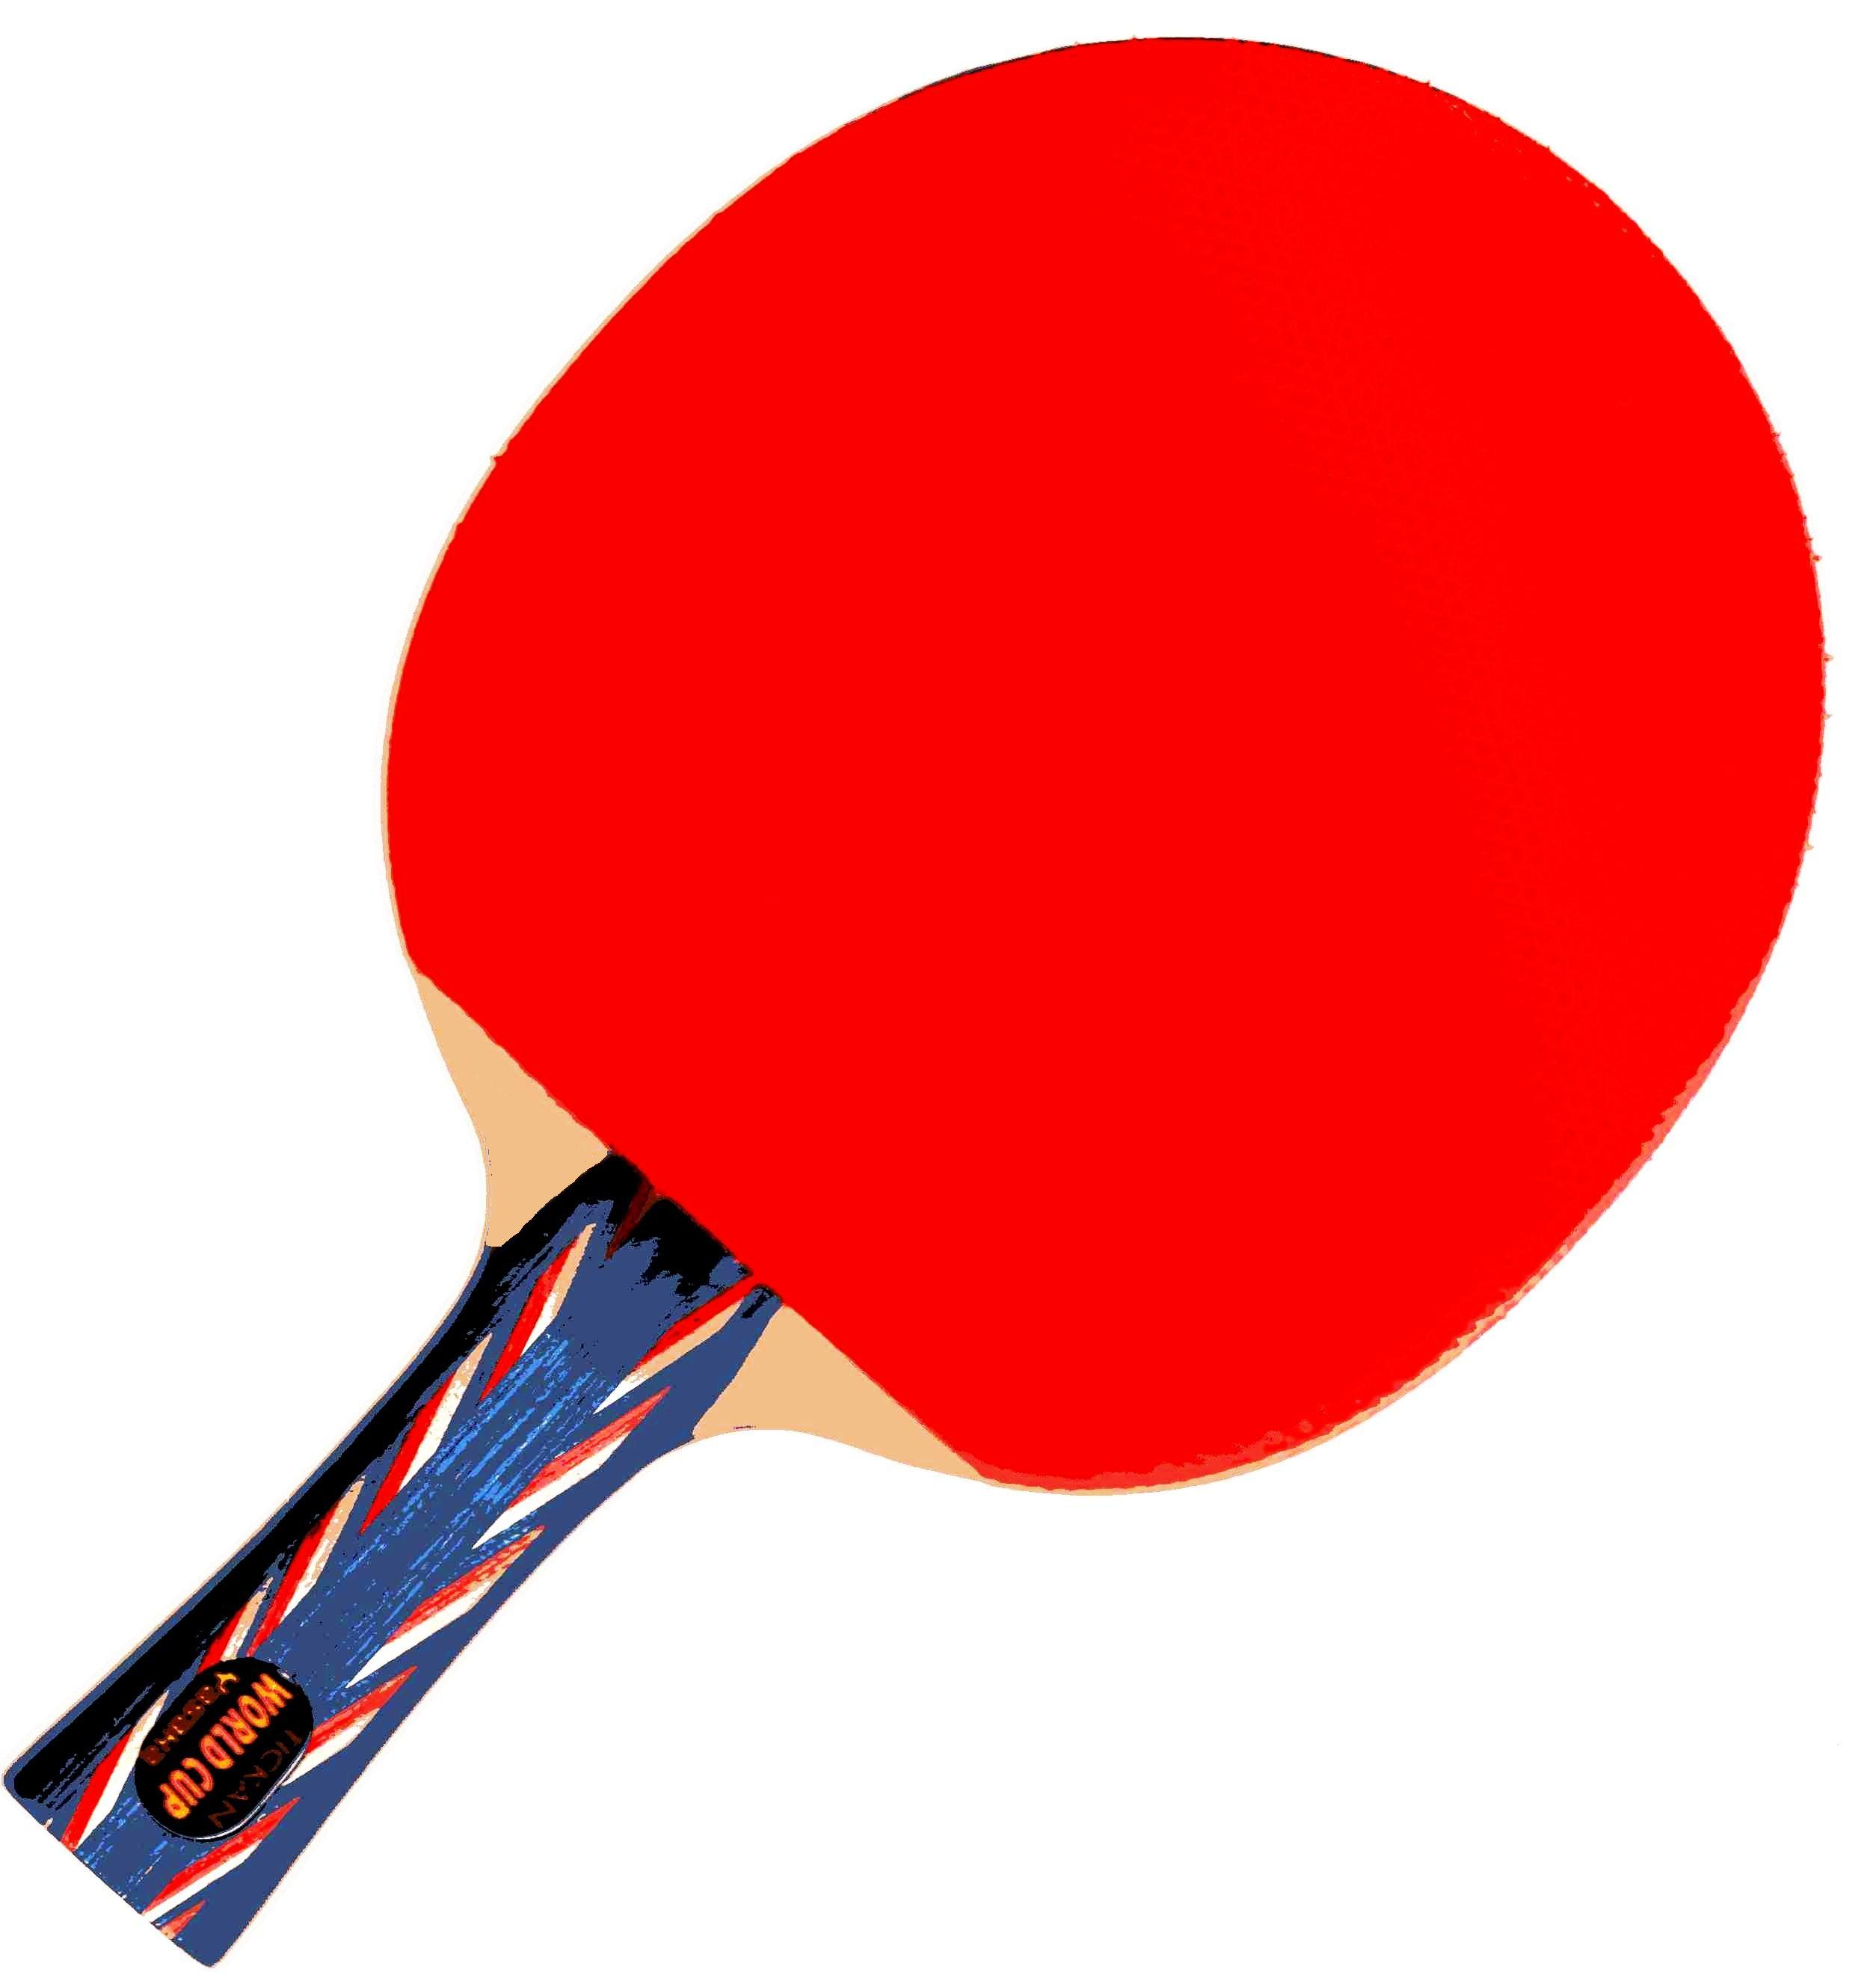 Table tennis racket png - These Are Some Of Player Hater